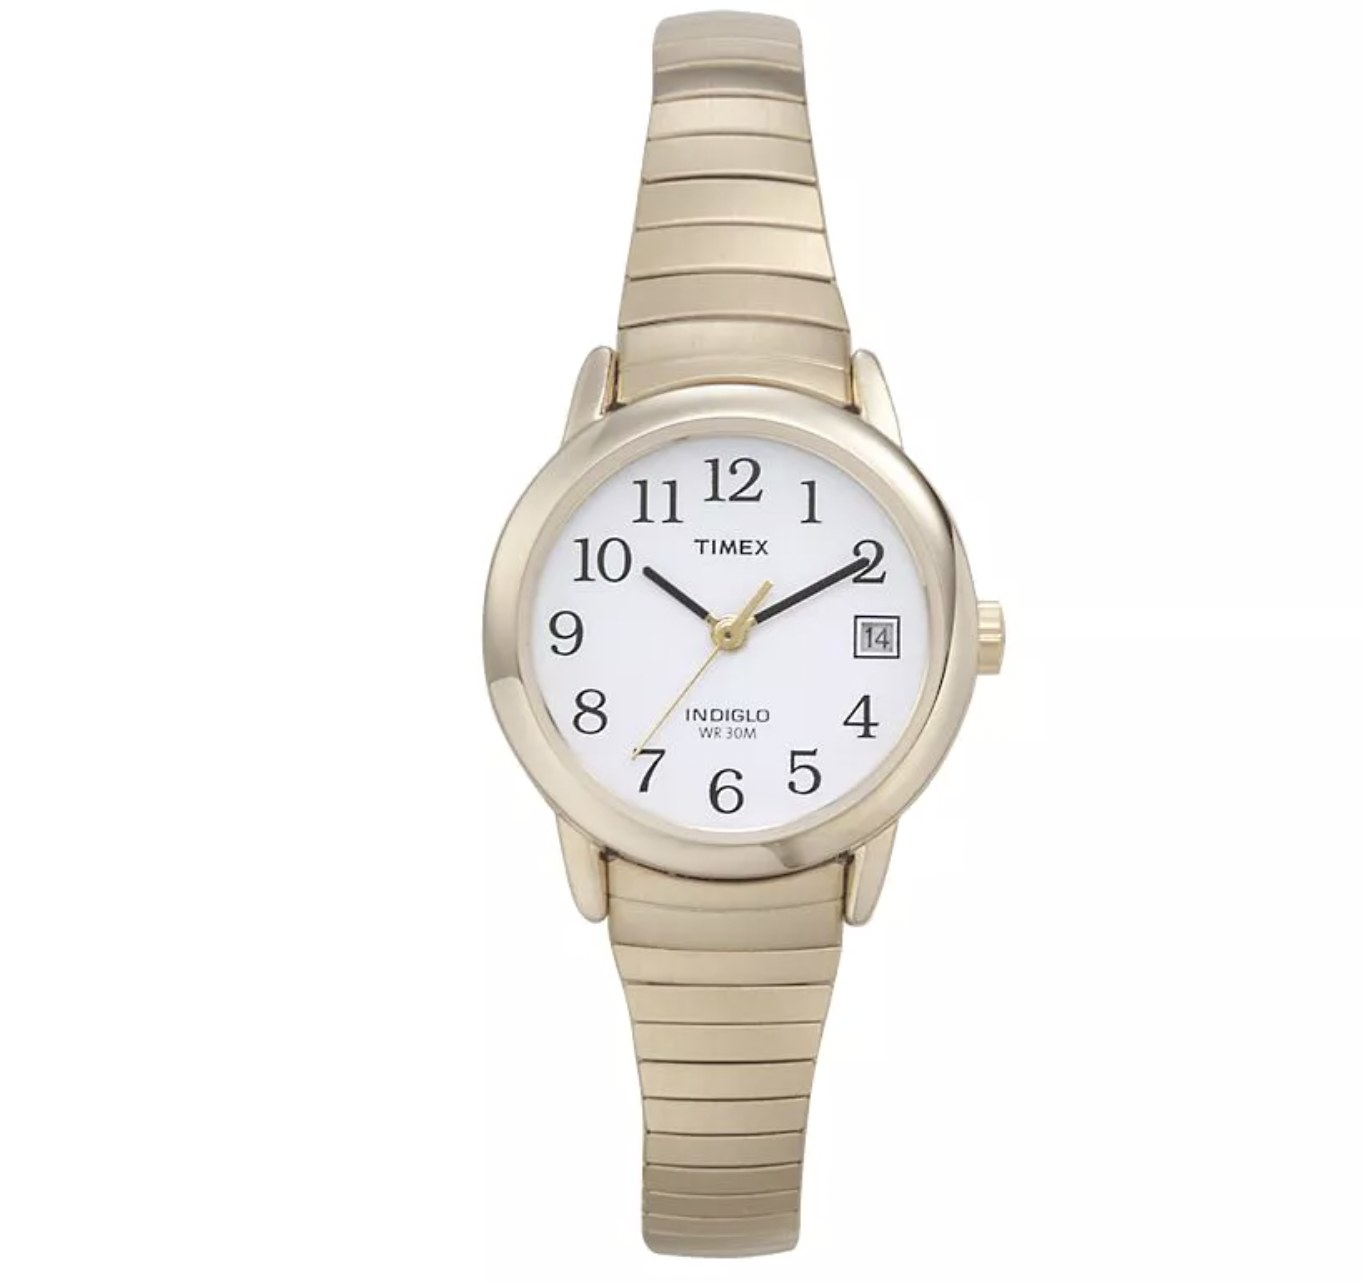 A gold timepiece watch with ridged detailing on the links